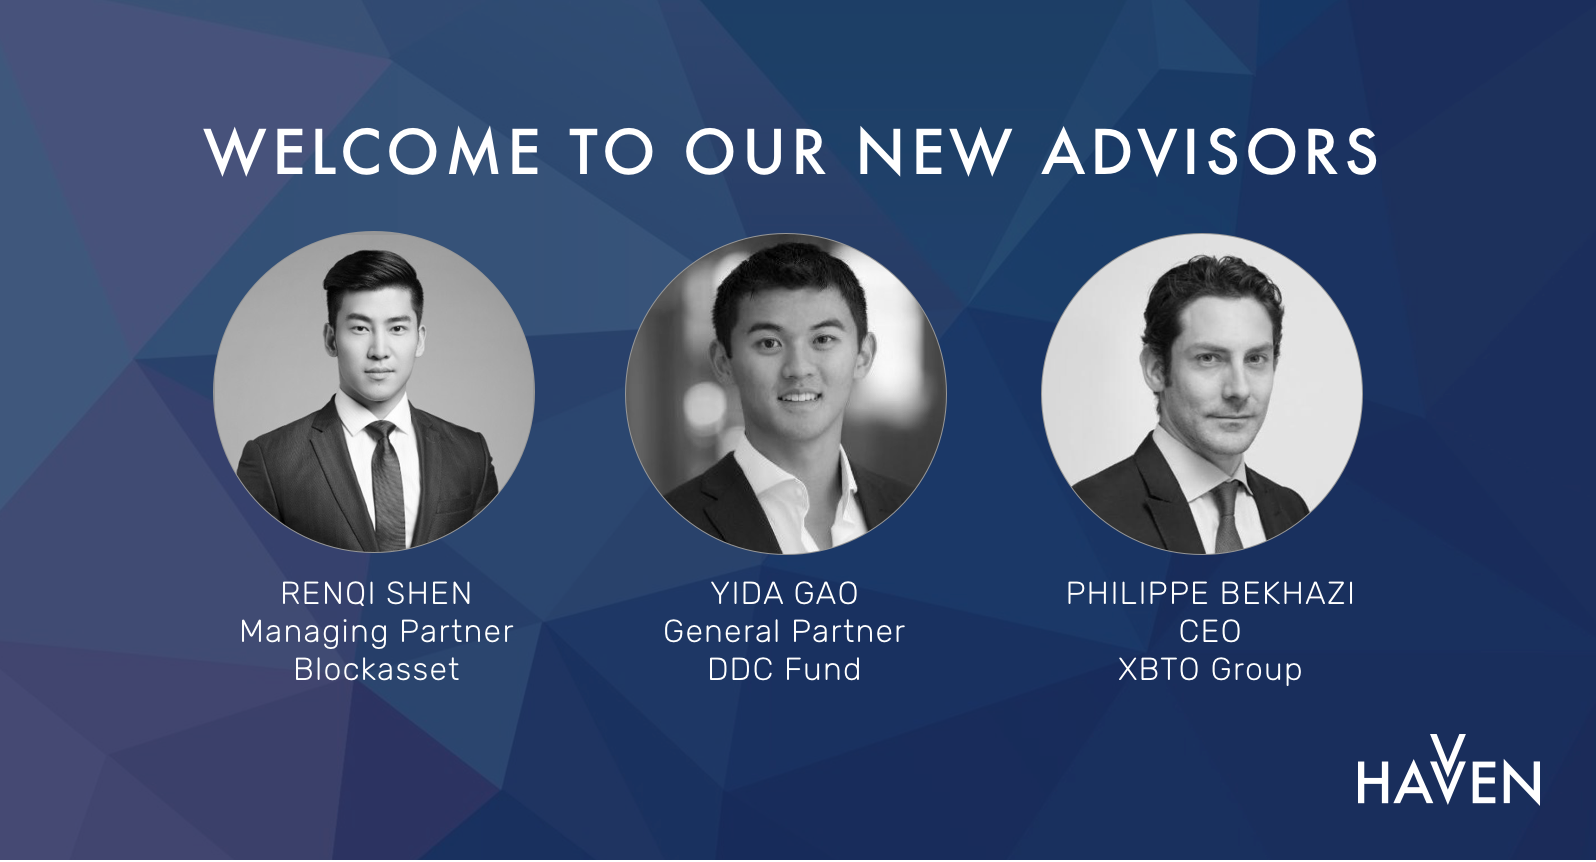 New advisors join the Havven team